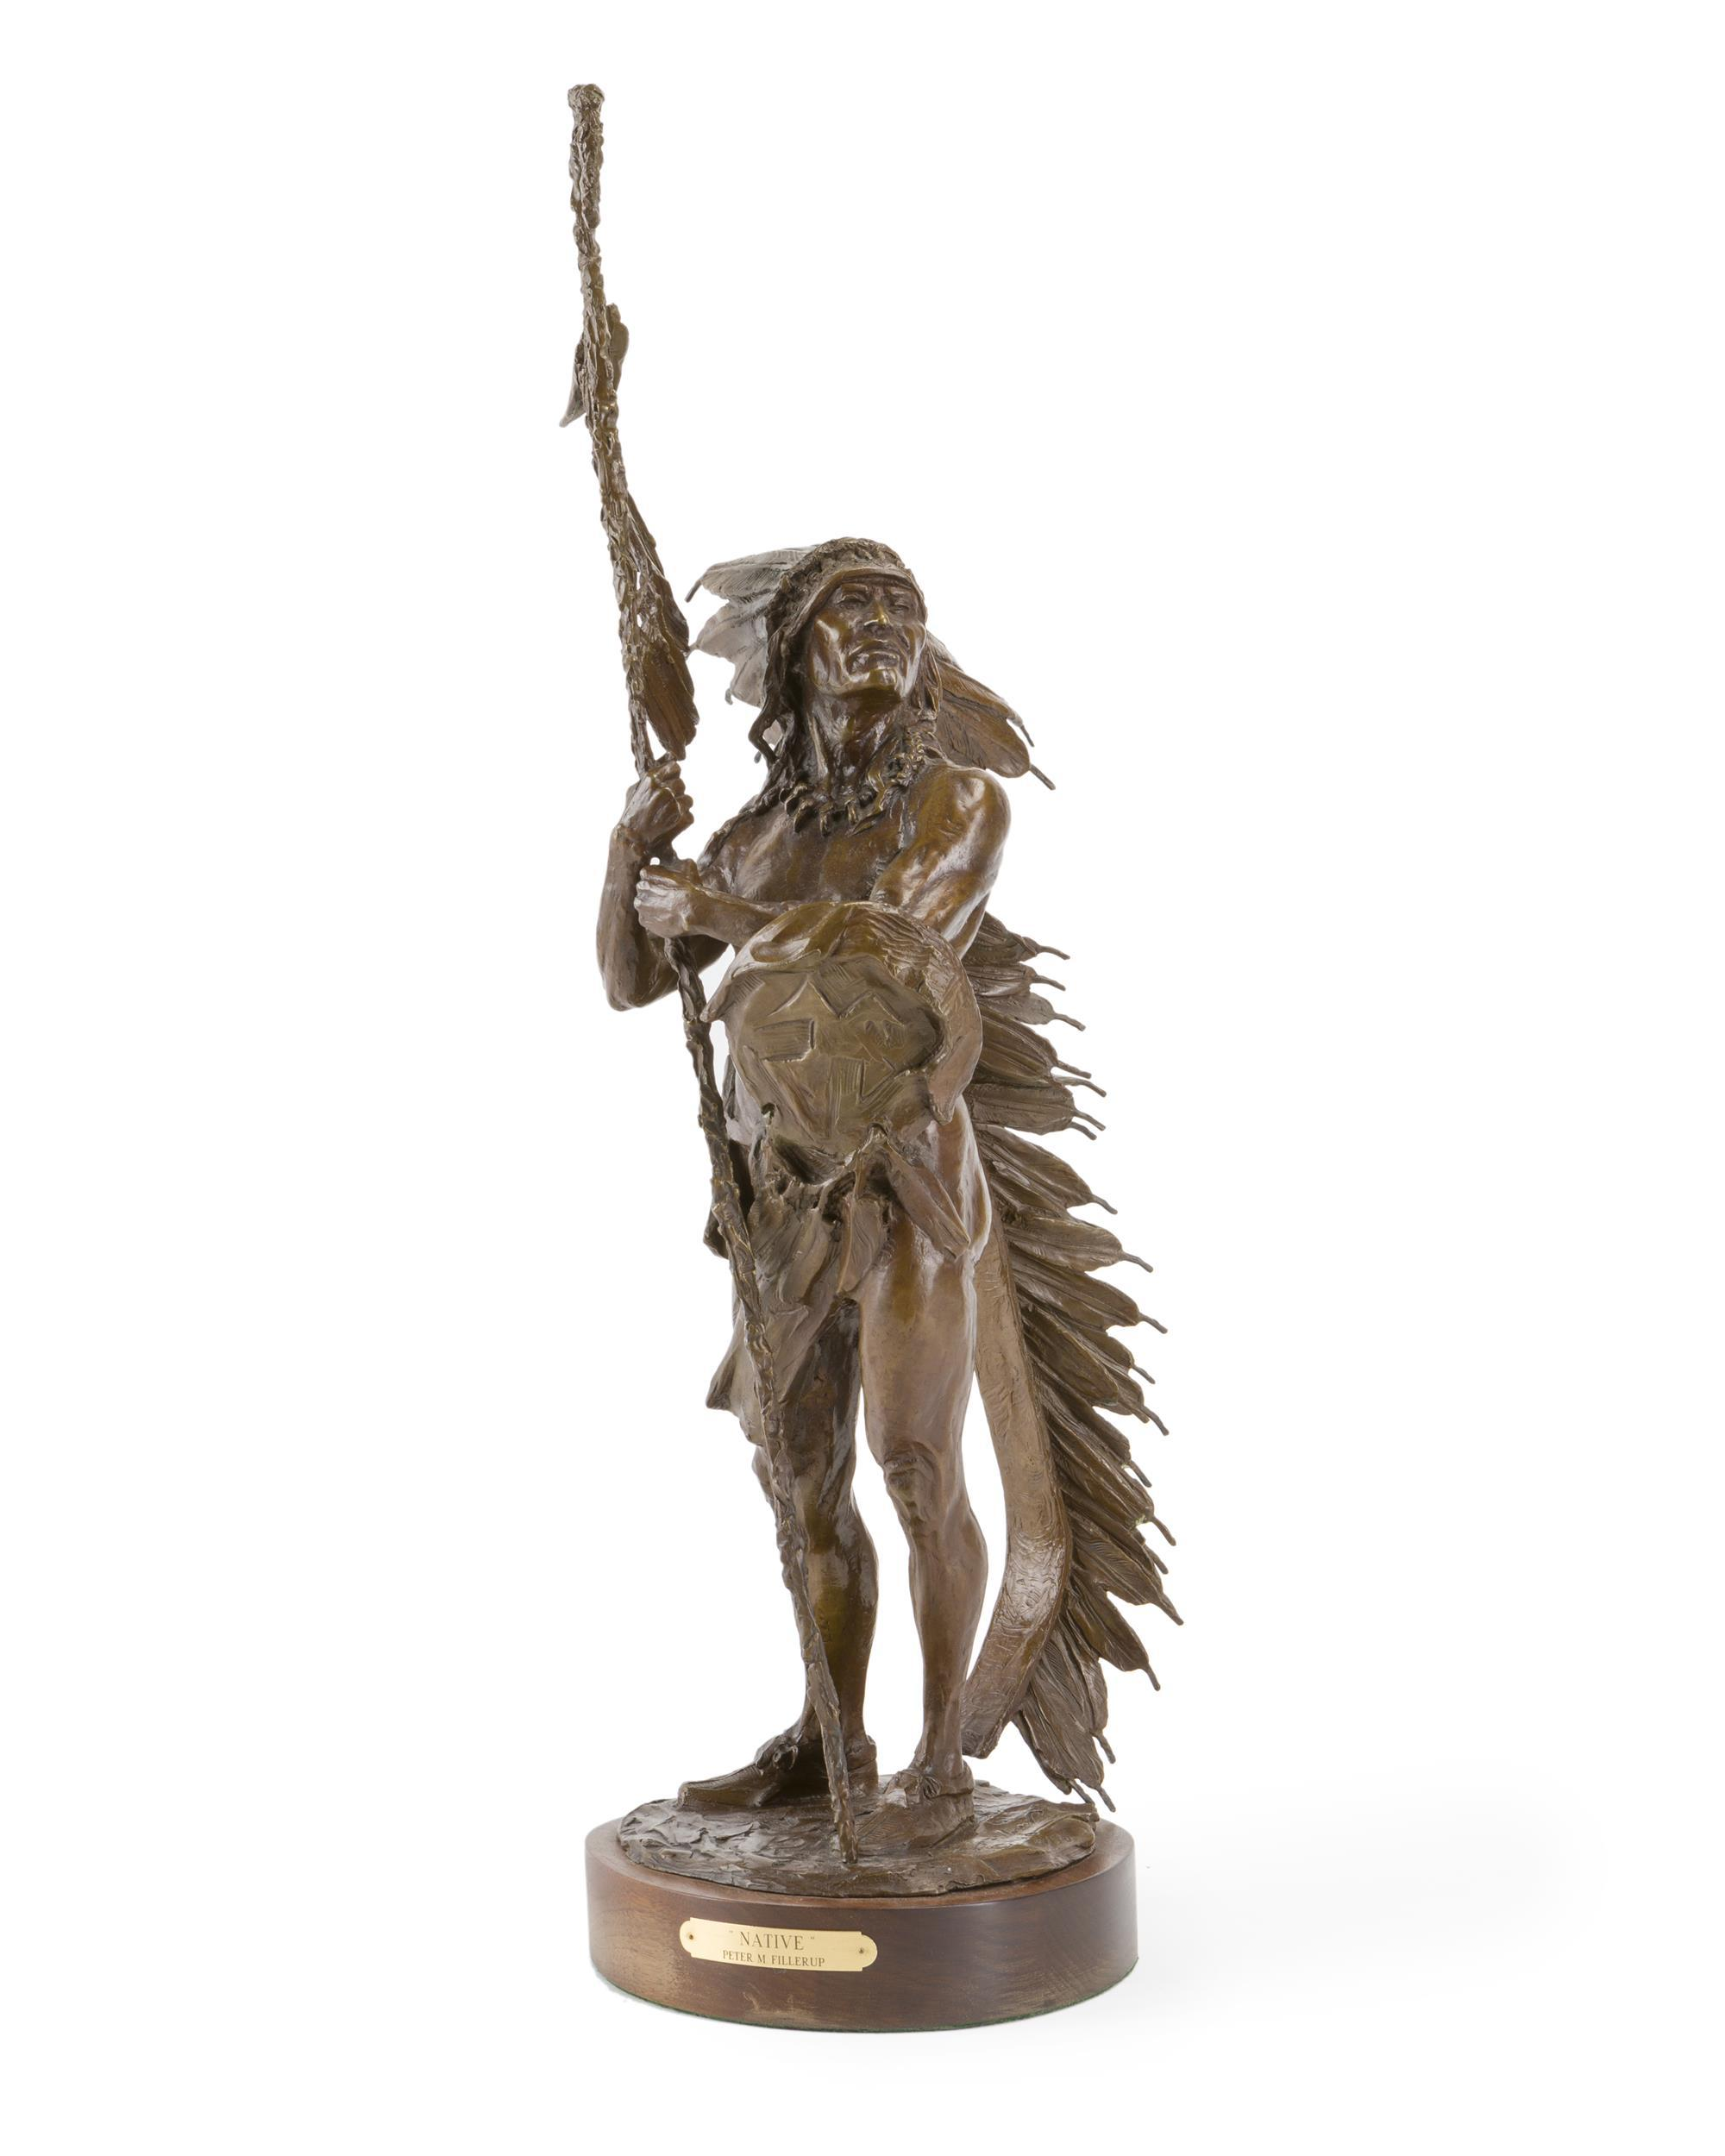 "Peter Fillerup, (b. 1953 Wyoming), Standing American Indian, 1990, Patinated bronze on wood plinth, 29"" H x 8"" W x 9.5"" D"